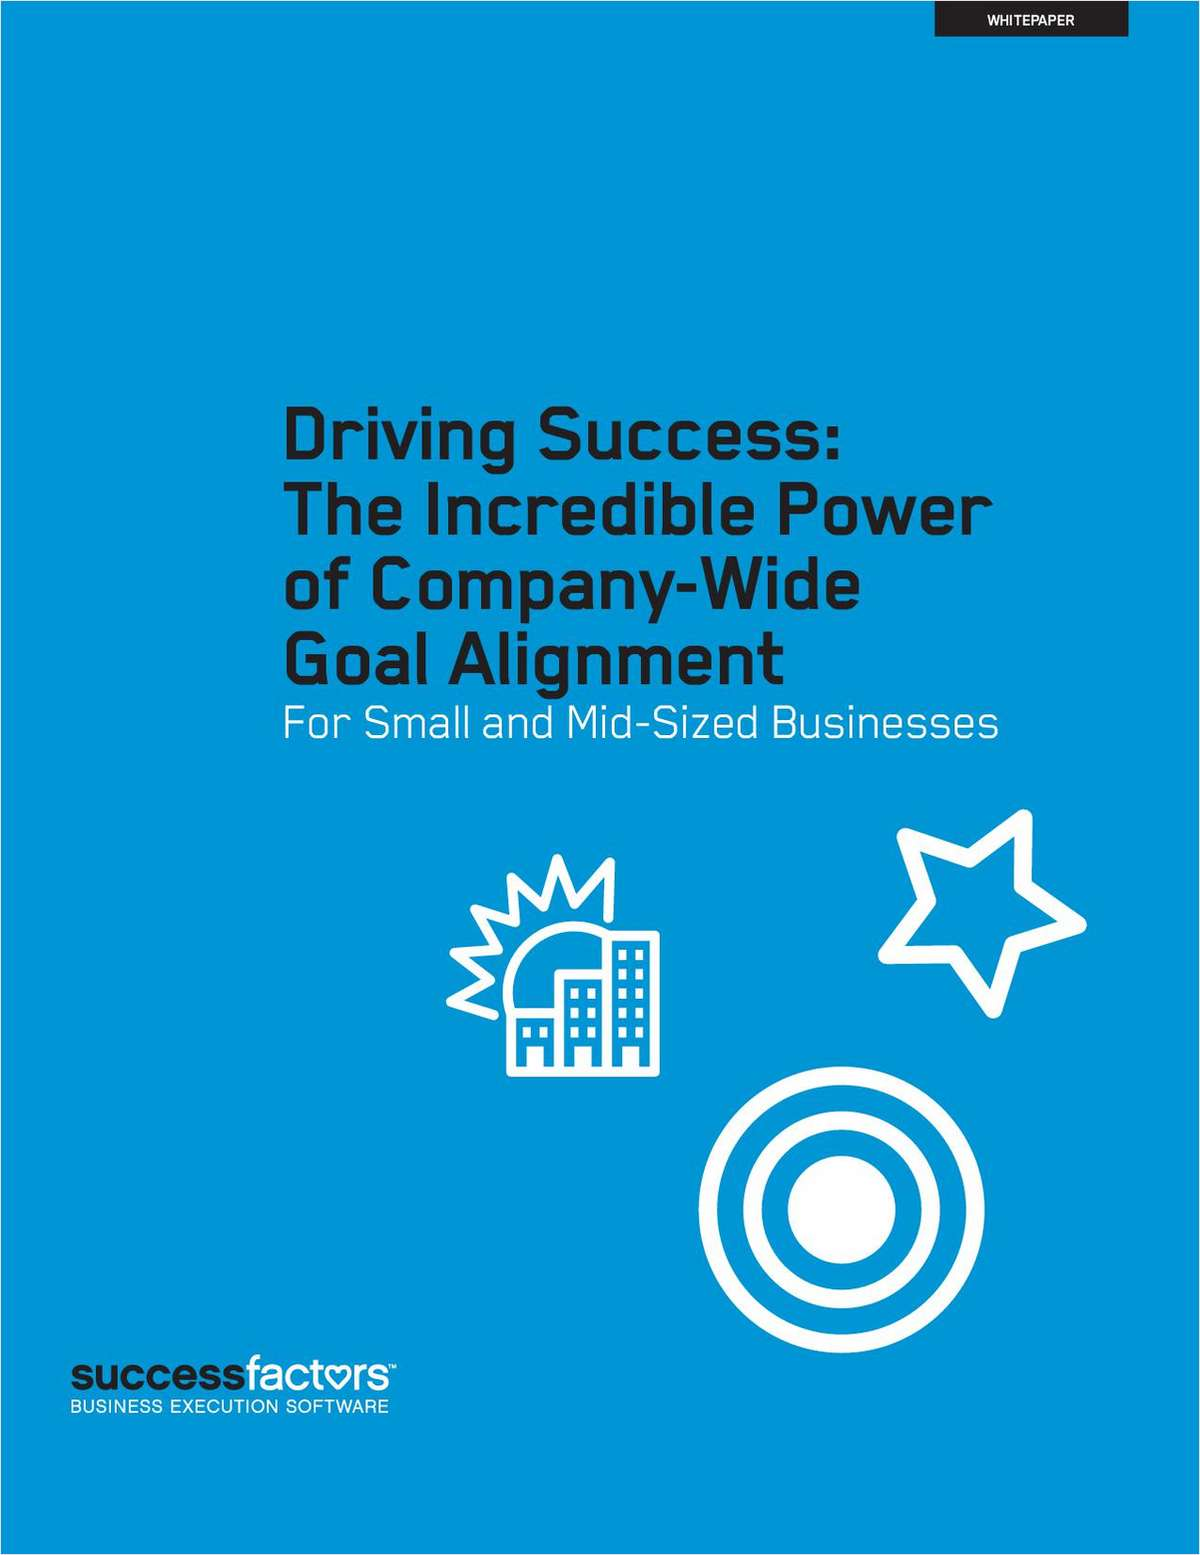 The Incredible Power of Company-Wide Goal Alignment for Small and Mid-Sized Businesses